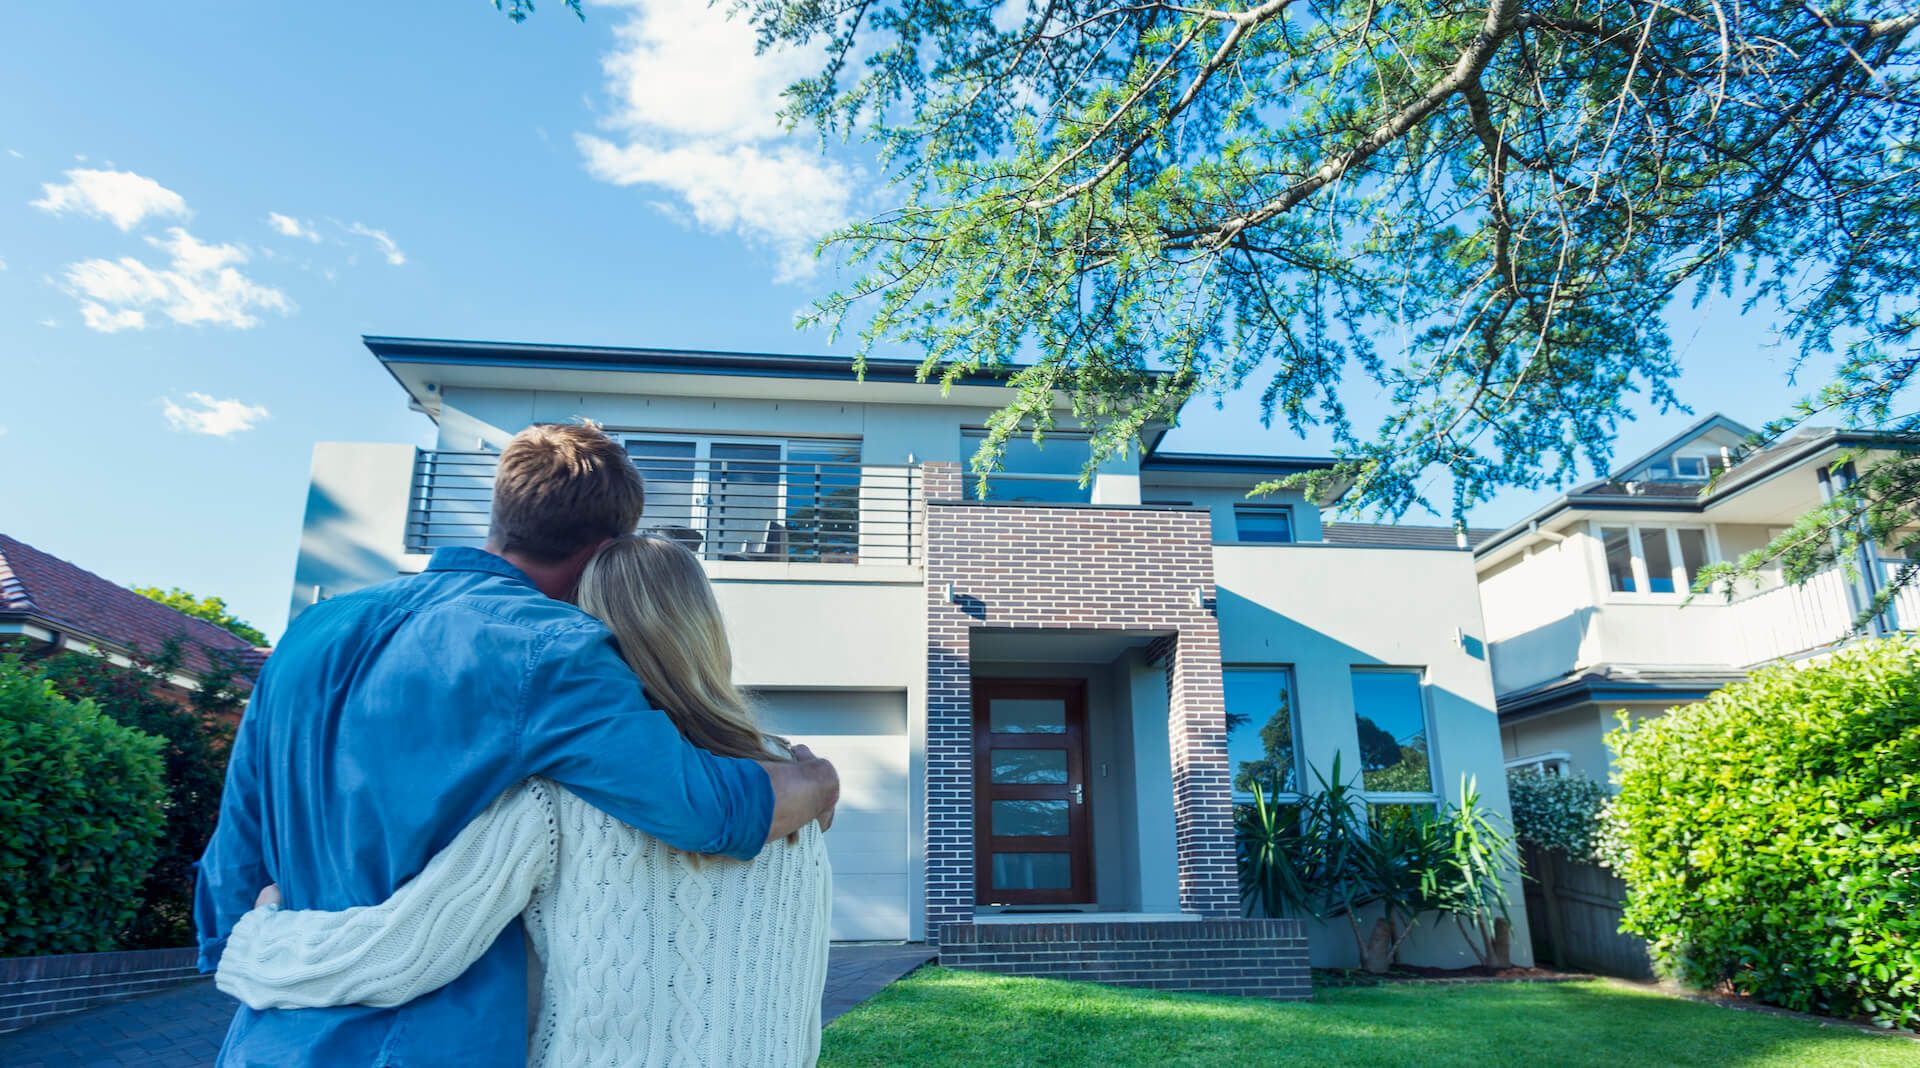 Need a little extra so you can buy your dream property? Here are 4 tips that can help maximise your borrowing power.